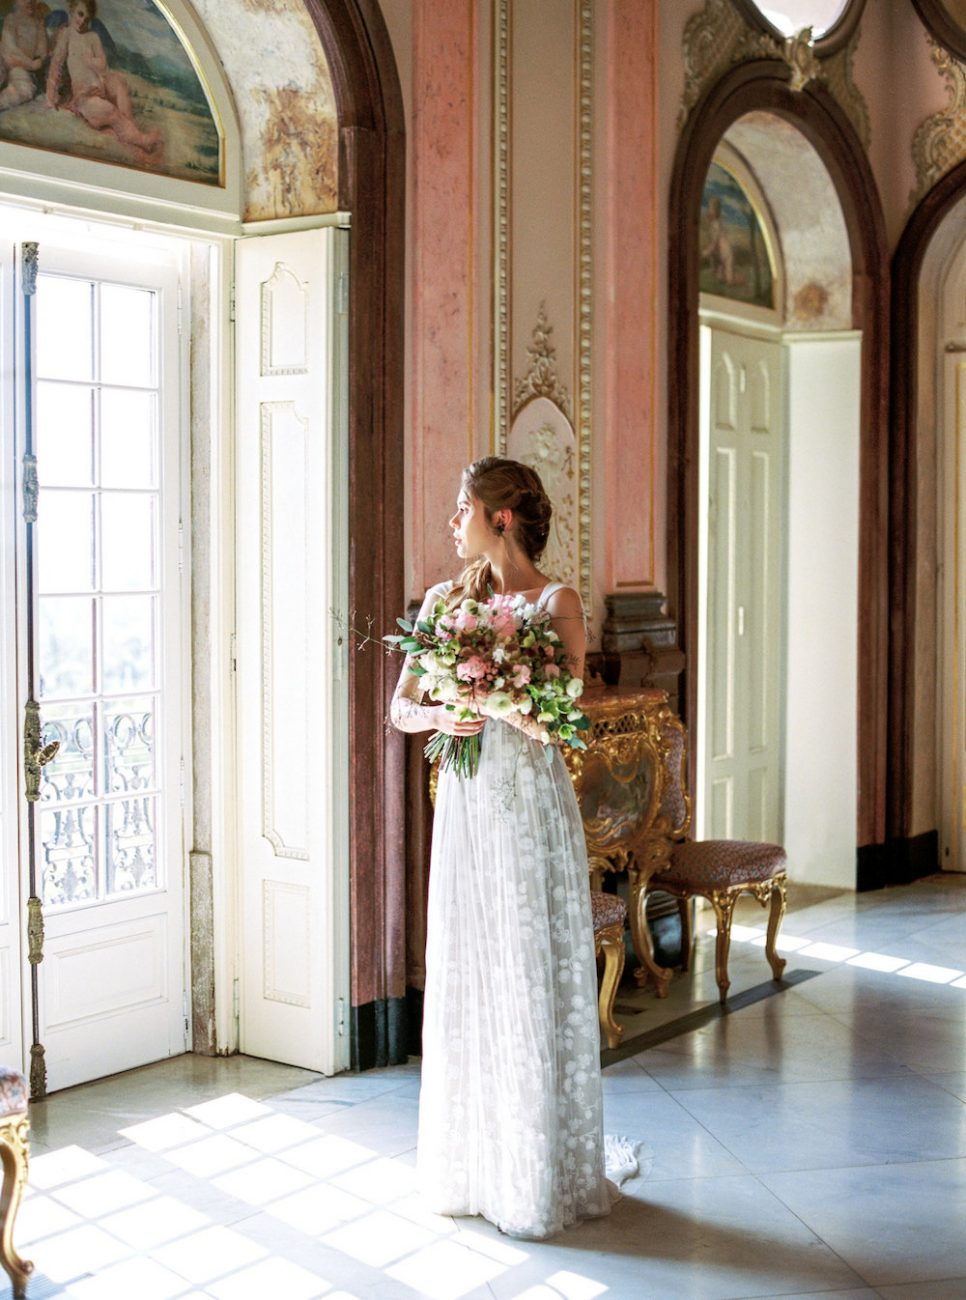 Palace Wedding Inspiration bride inside palace with flowers